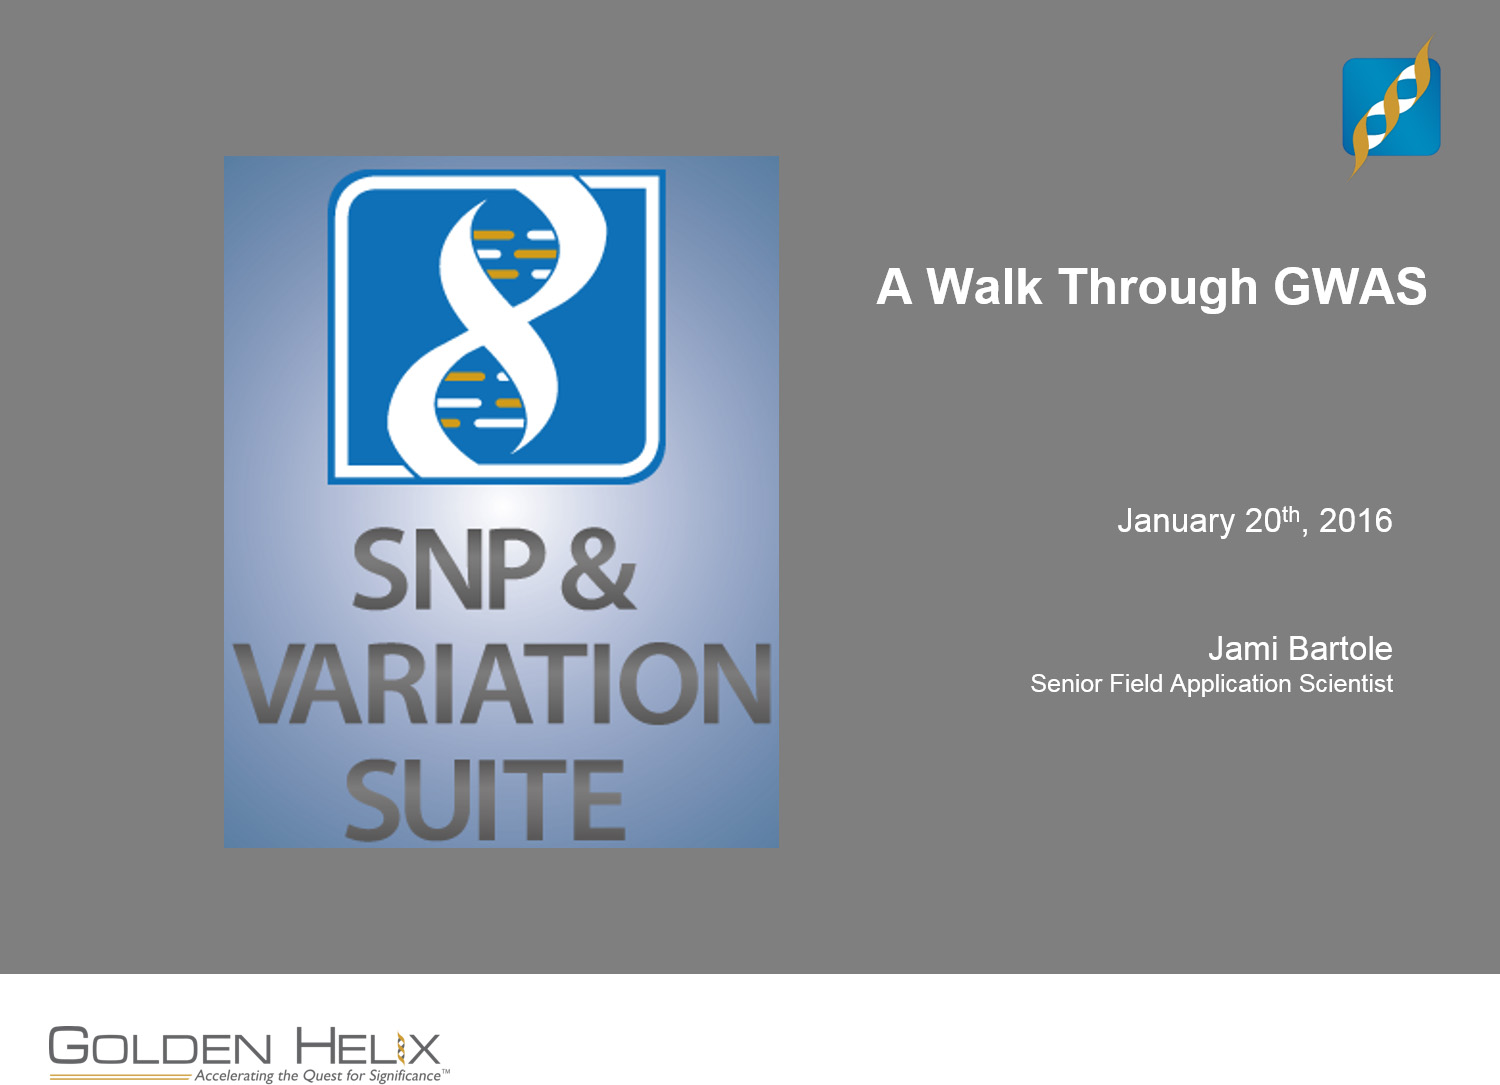 A Walk Through GWAS